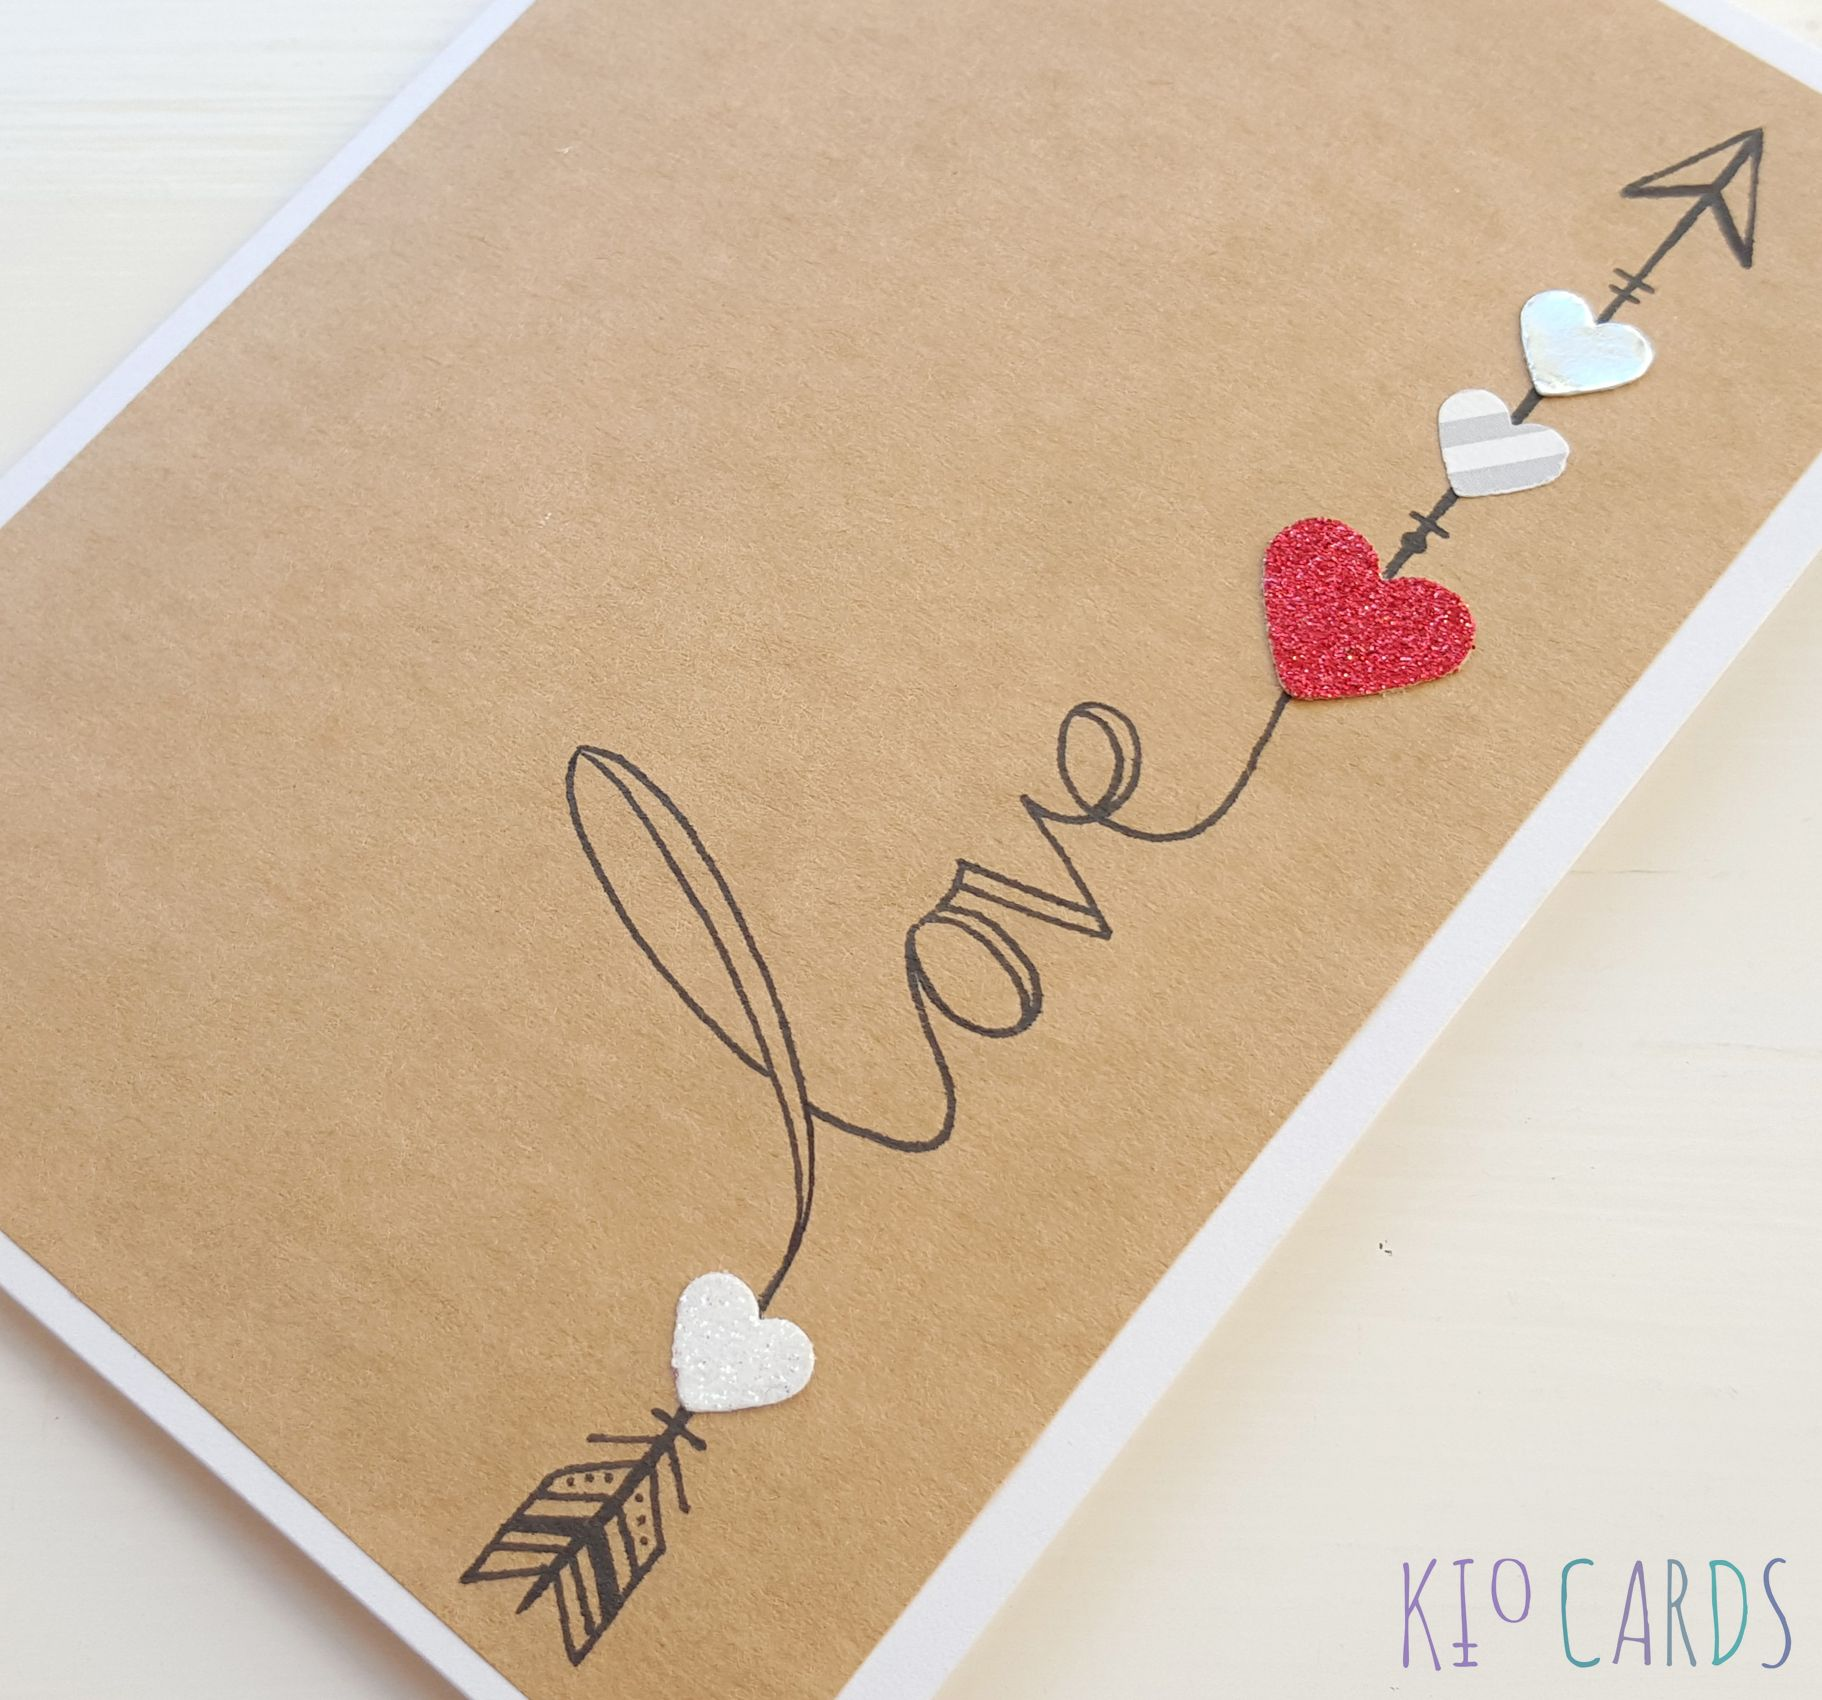 Kio Cards Hand Drawn Love Arrow Anniversary Card Love Cupid